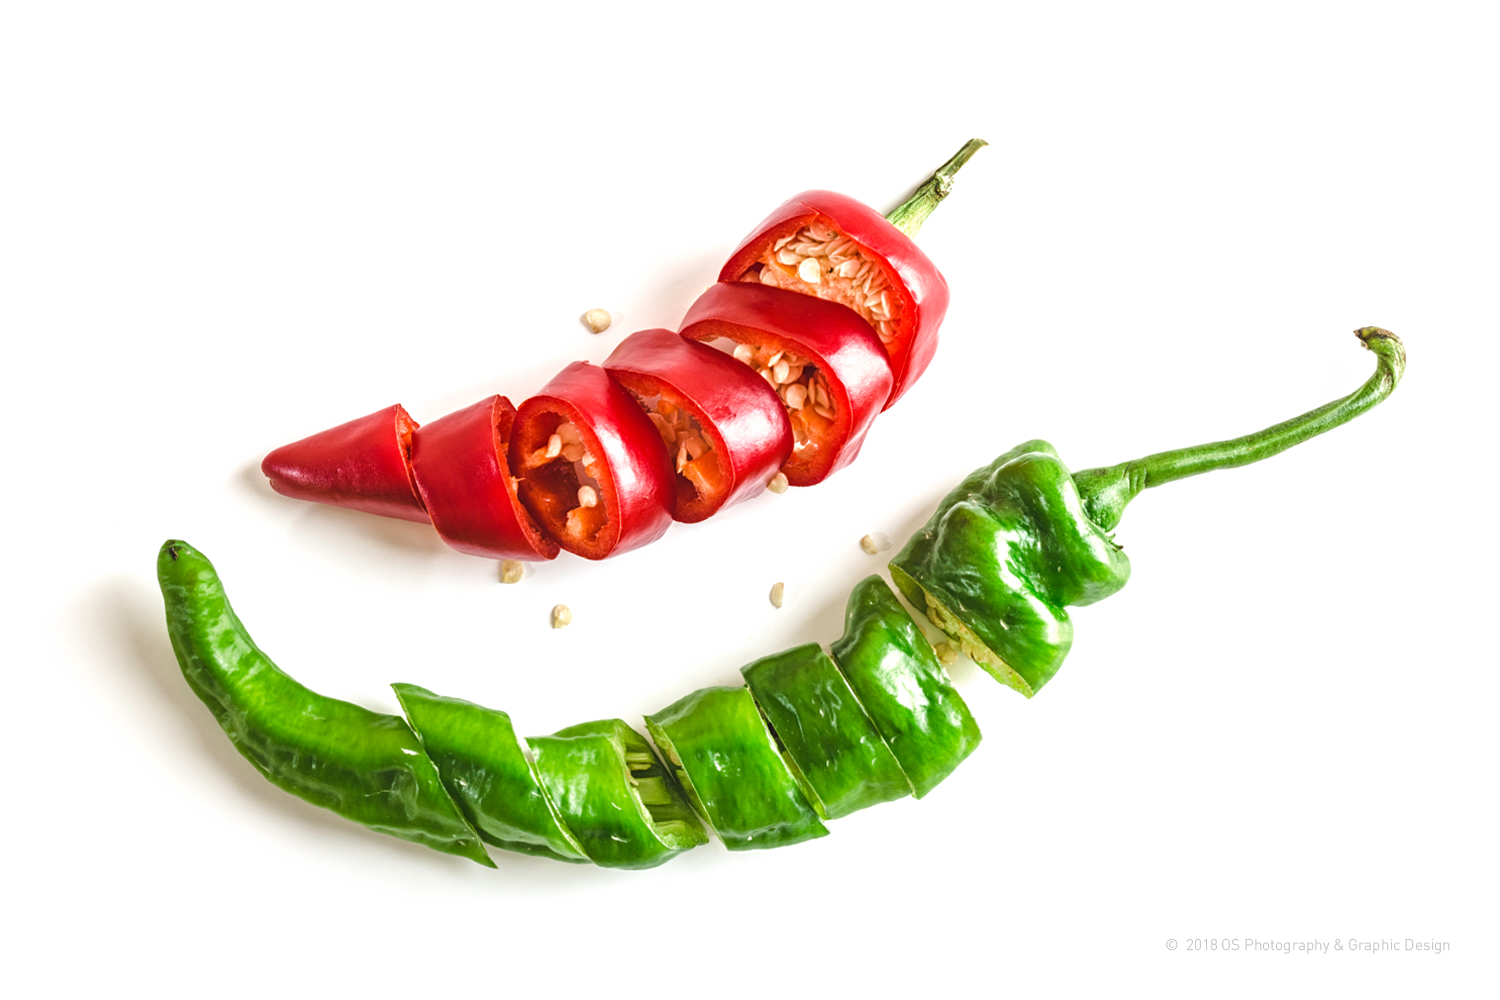 RED-N-GREEN HOT CHILI PEPPERS